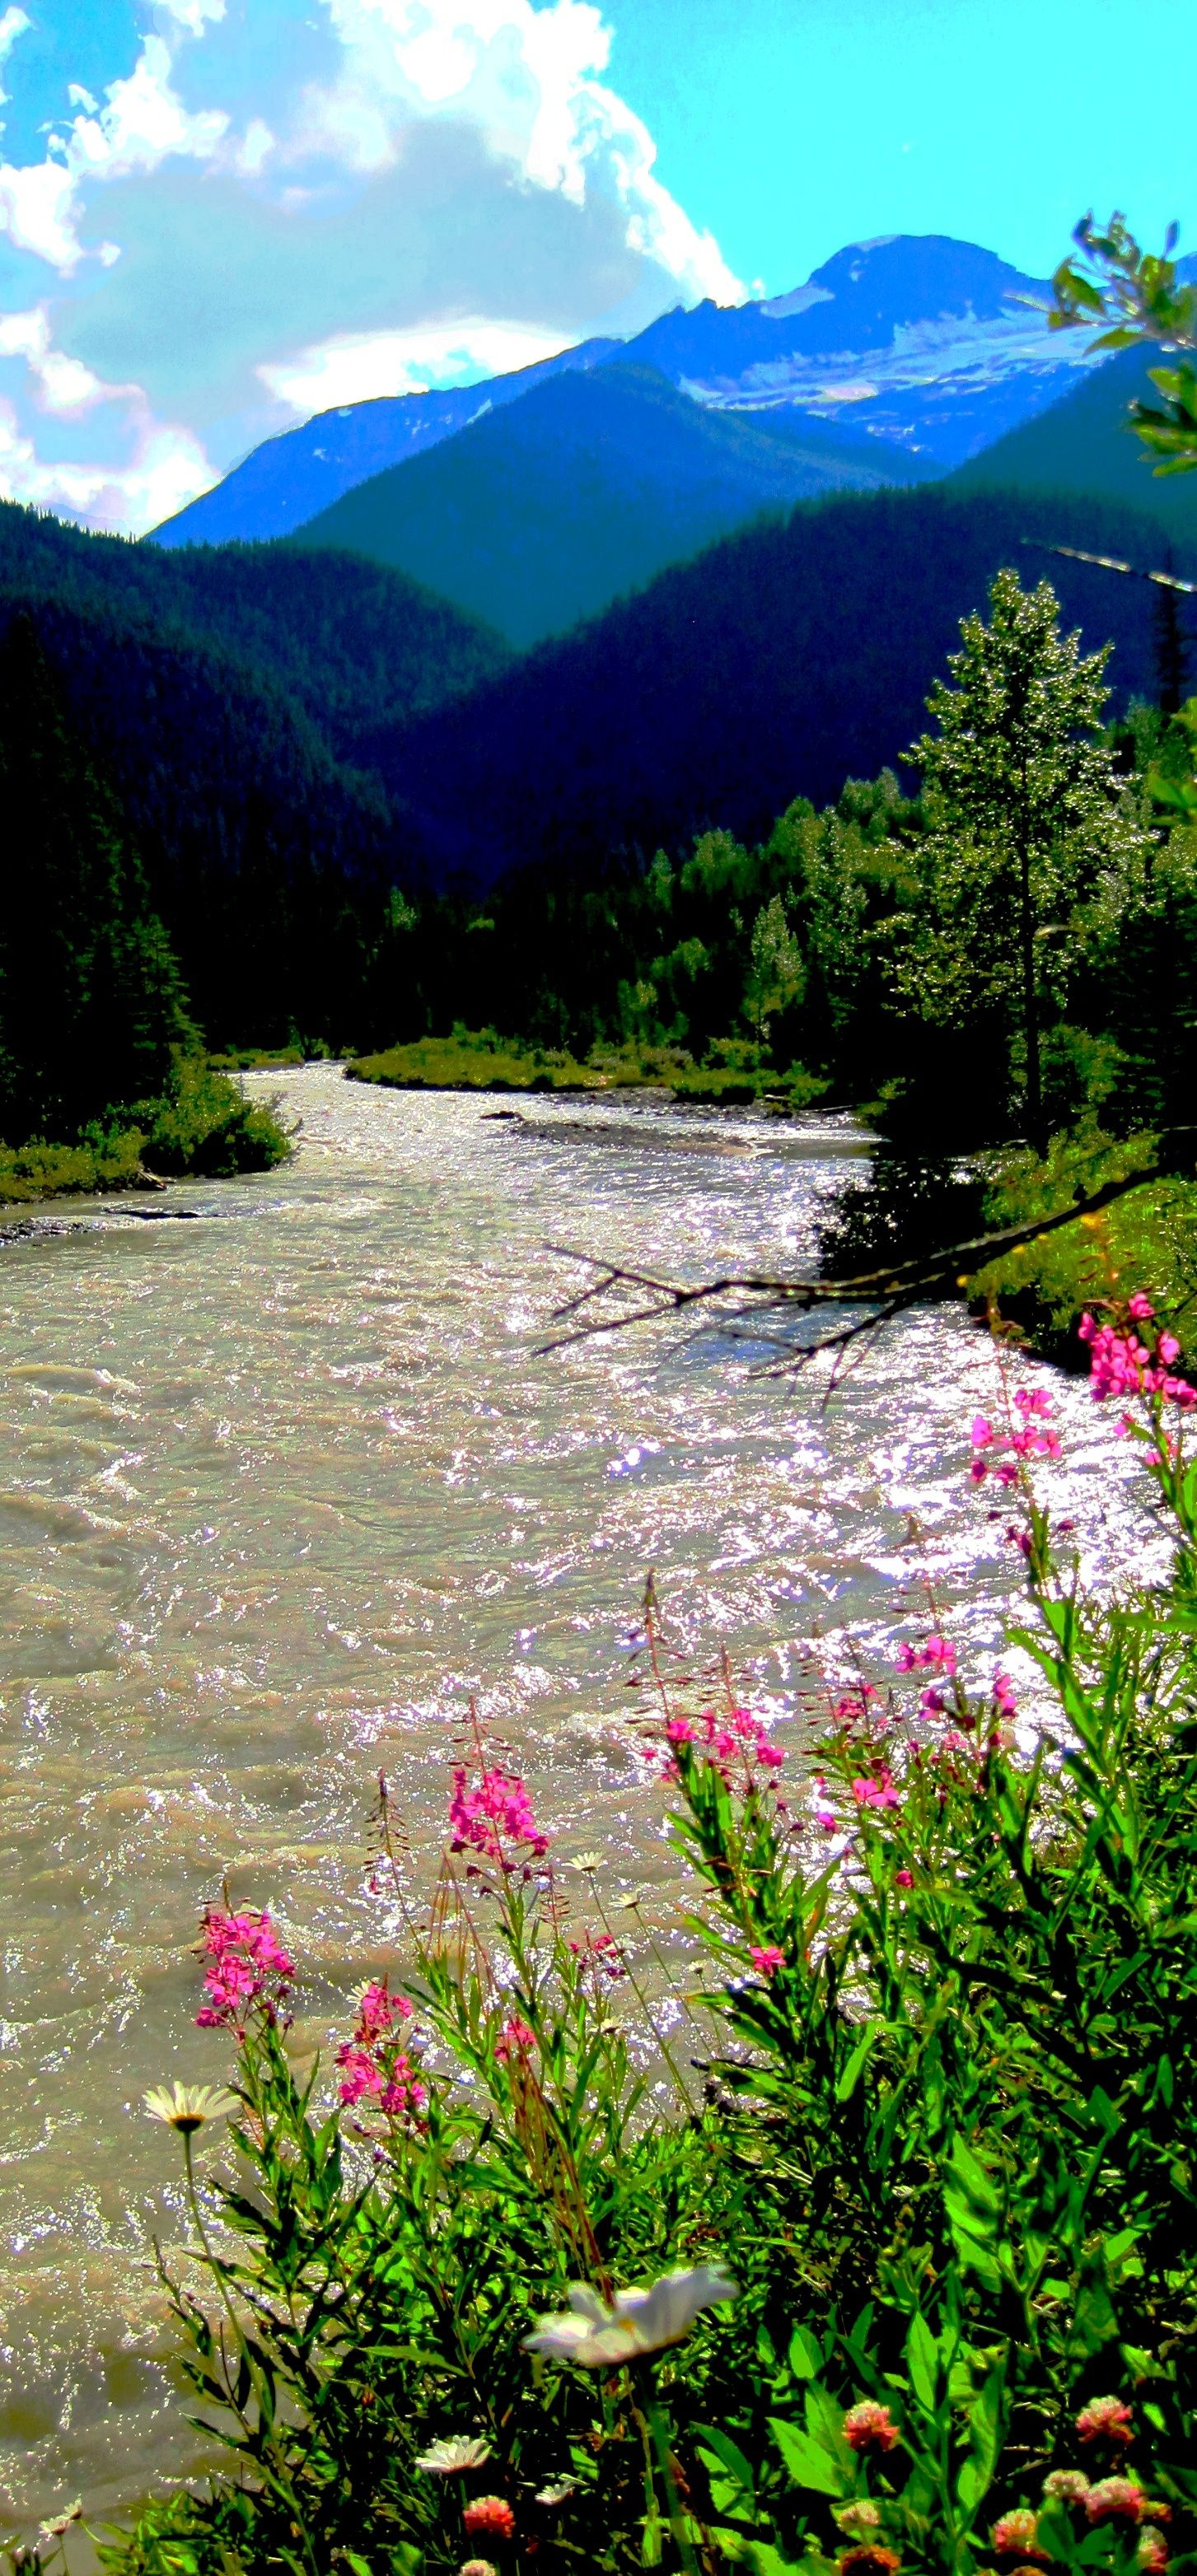 Rocky Mountain River This Reminds Me Of The John Denver Song Rocky Mountain High Beautiful Nature Beautiful Landscapes Scenery